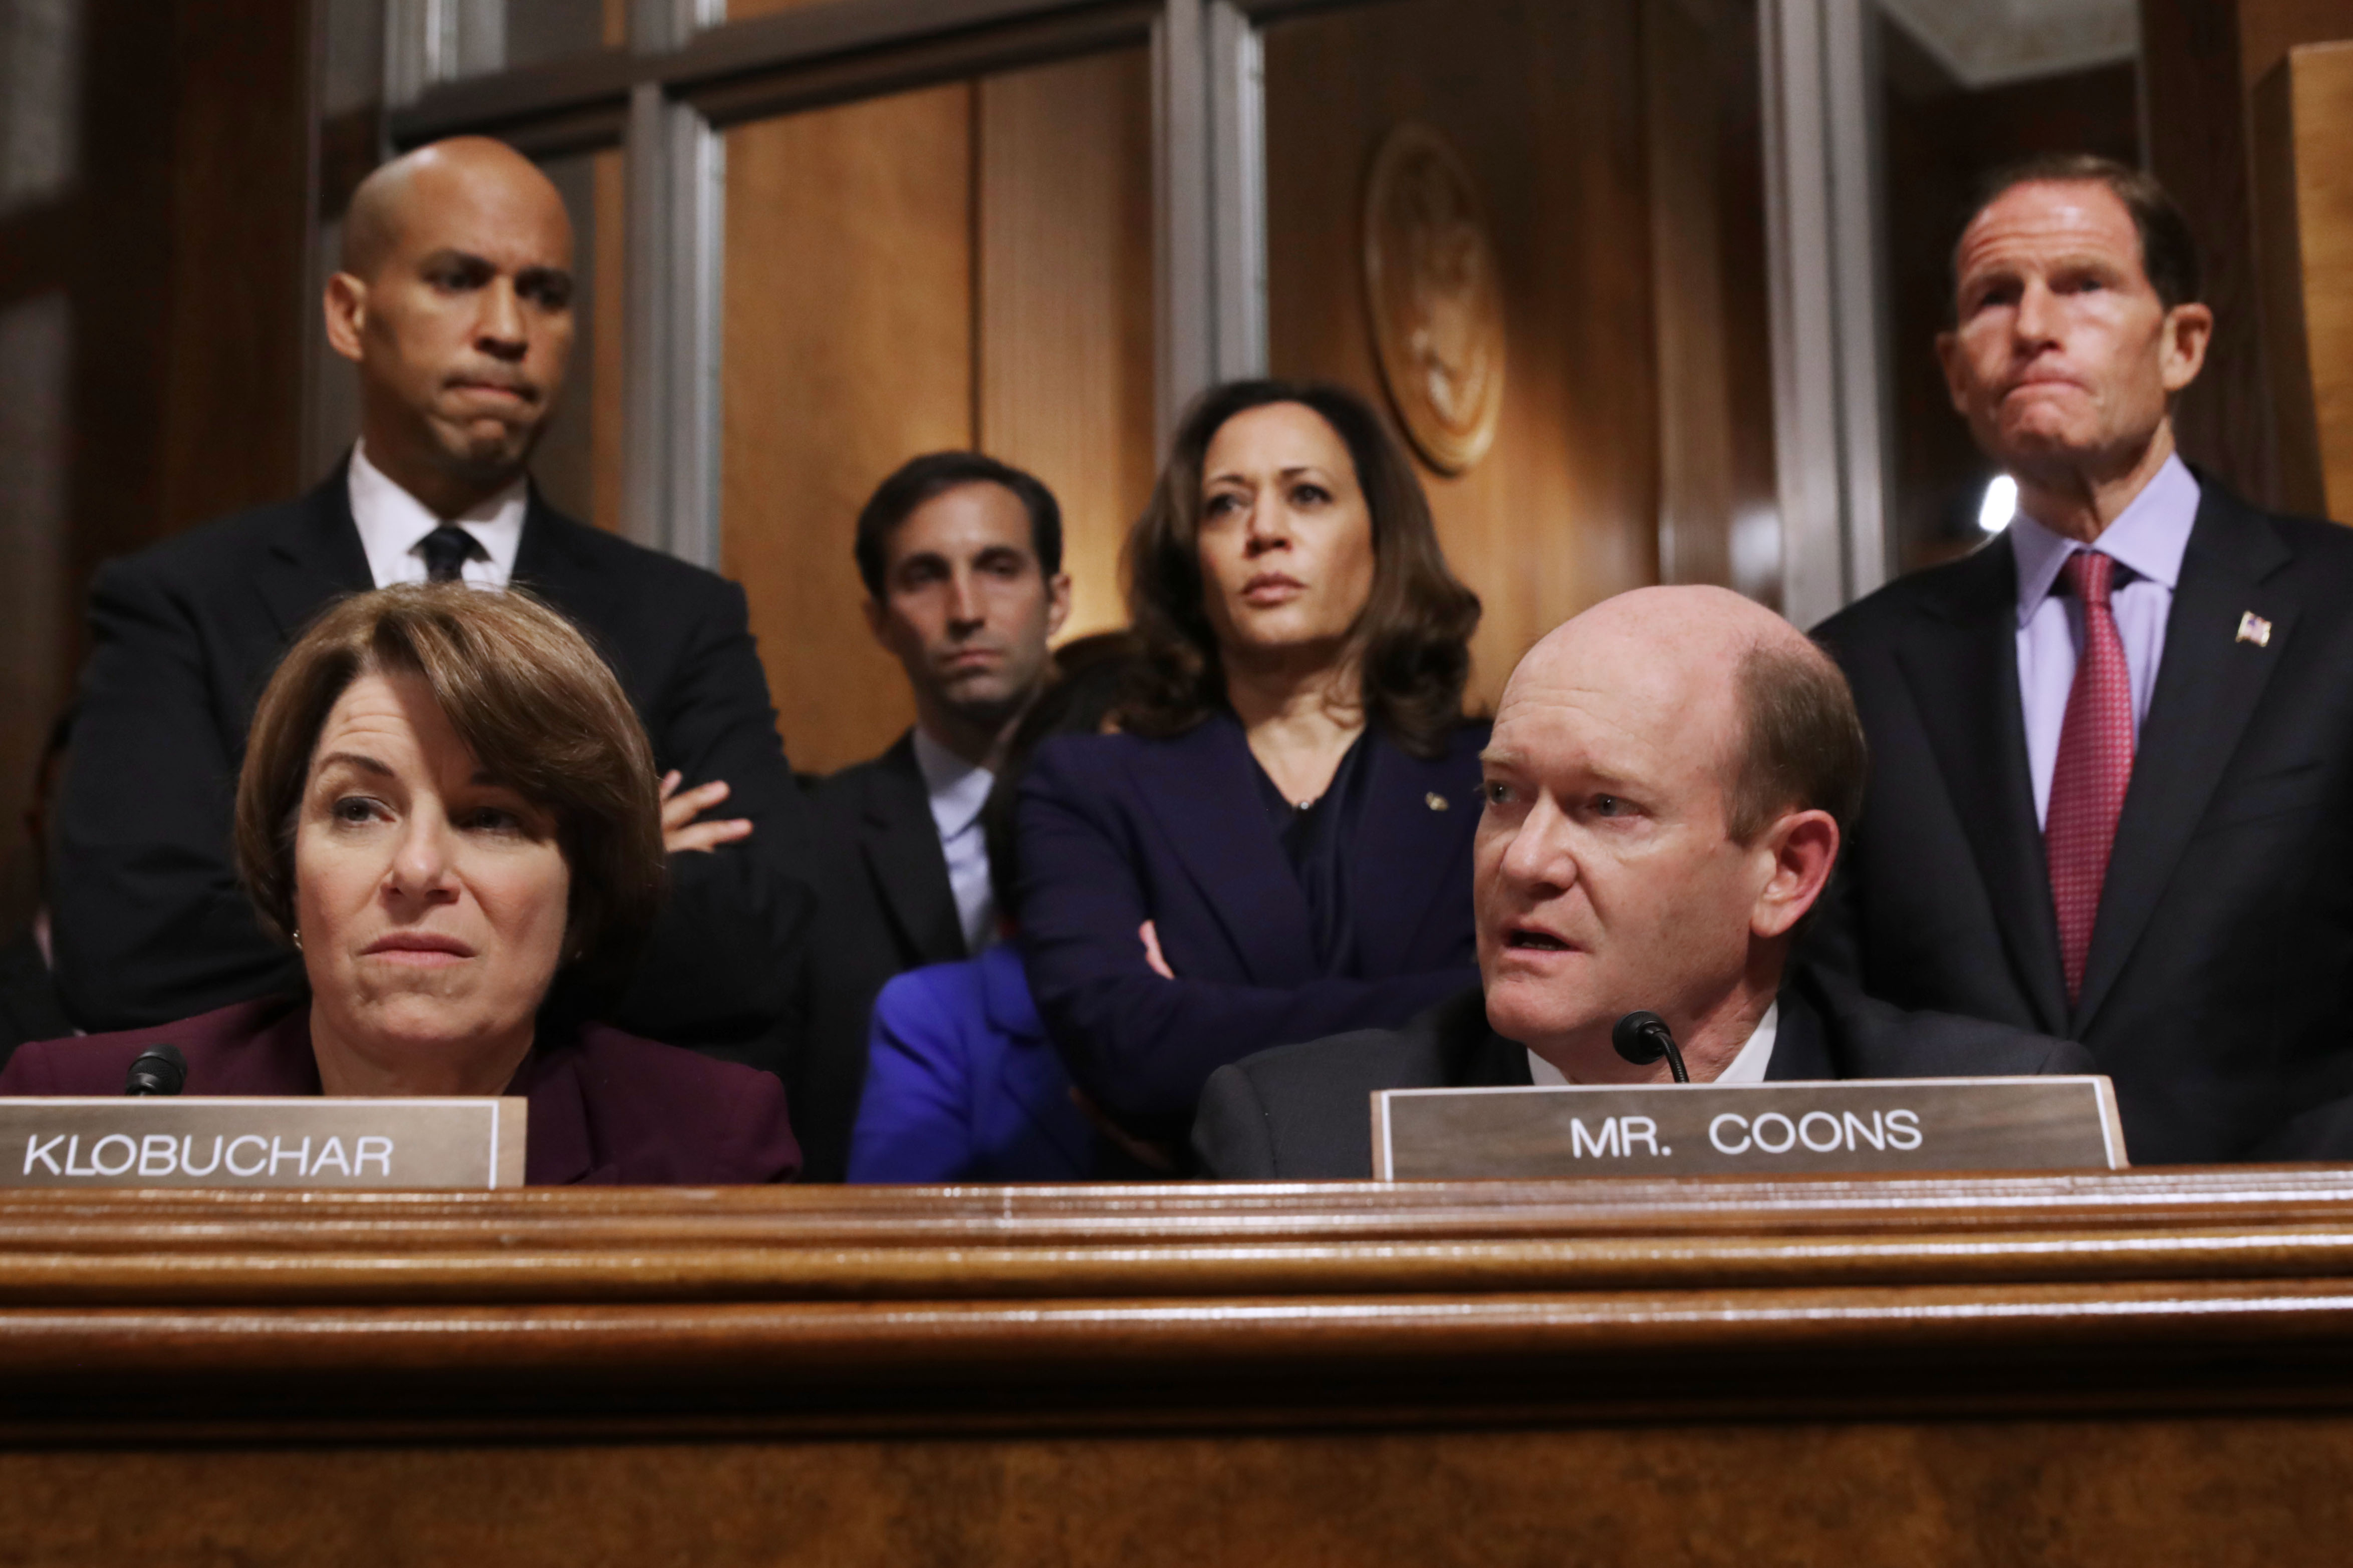 Senate Judiciary Committee members (L-R) Sen. Amy Klobuchar (D-MN), Sen. Cory Booker (D-NJ), Sen. Kamala Harris (D-CA), Sen. Chris Coons (D-DE) and Sen. Richard Blumenthal (D-CT) debate the confirmation of Supreme Court nominee Judge Brett Kavanaugh during a mark up hearing in the Dirksen Senate Office Building on Capitol Hill September 28, 2018 in Washington, DC. (Chip Somodevilla/Getty Images)